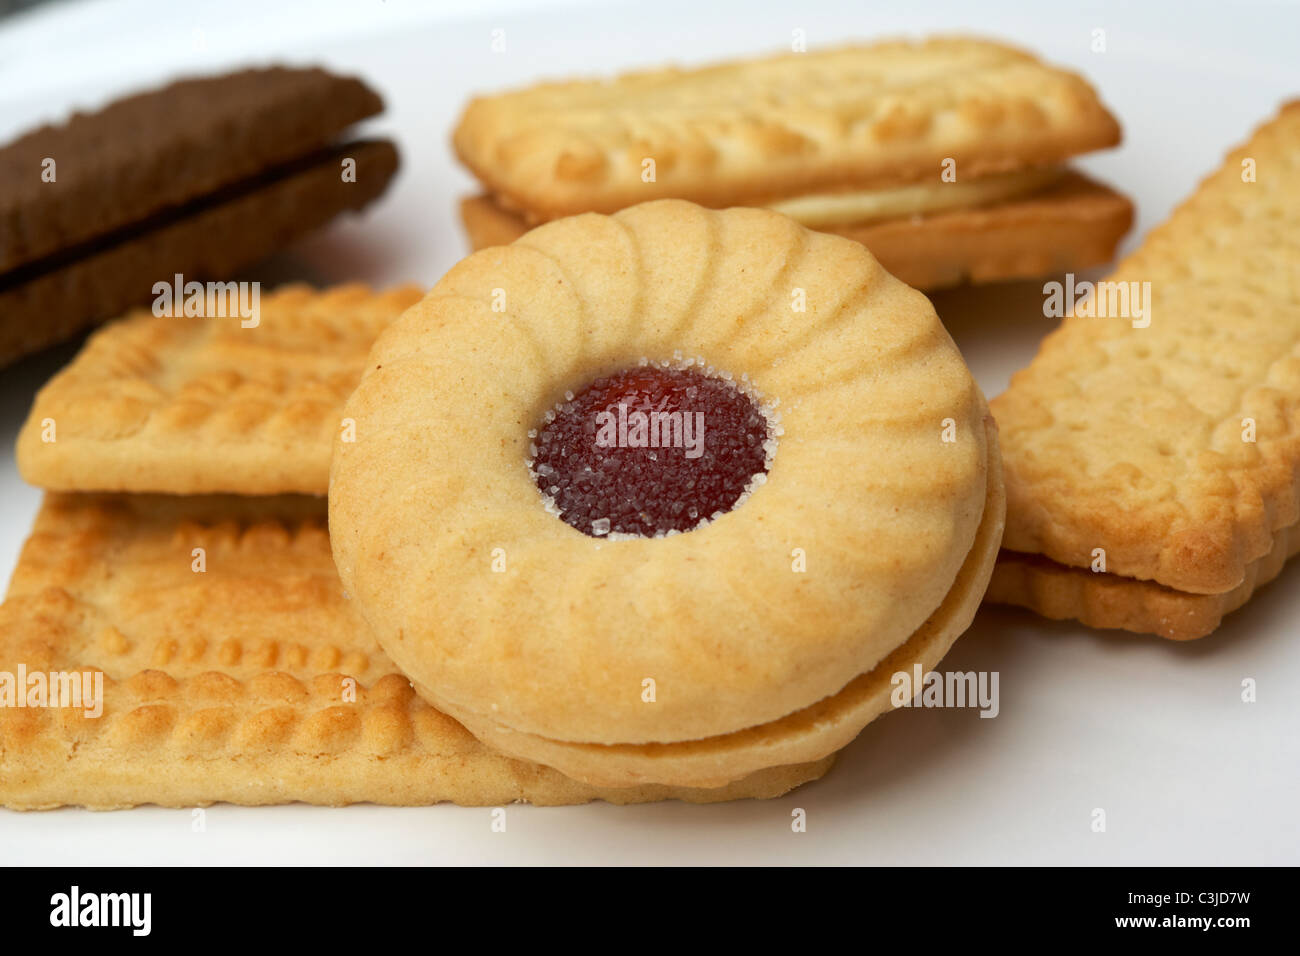 assorted british biscuits on a plate including a jammie dodger - Stock Image